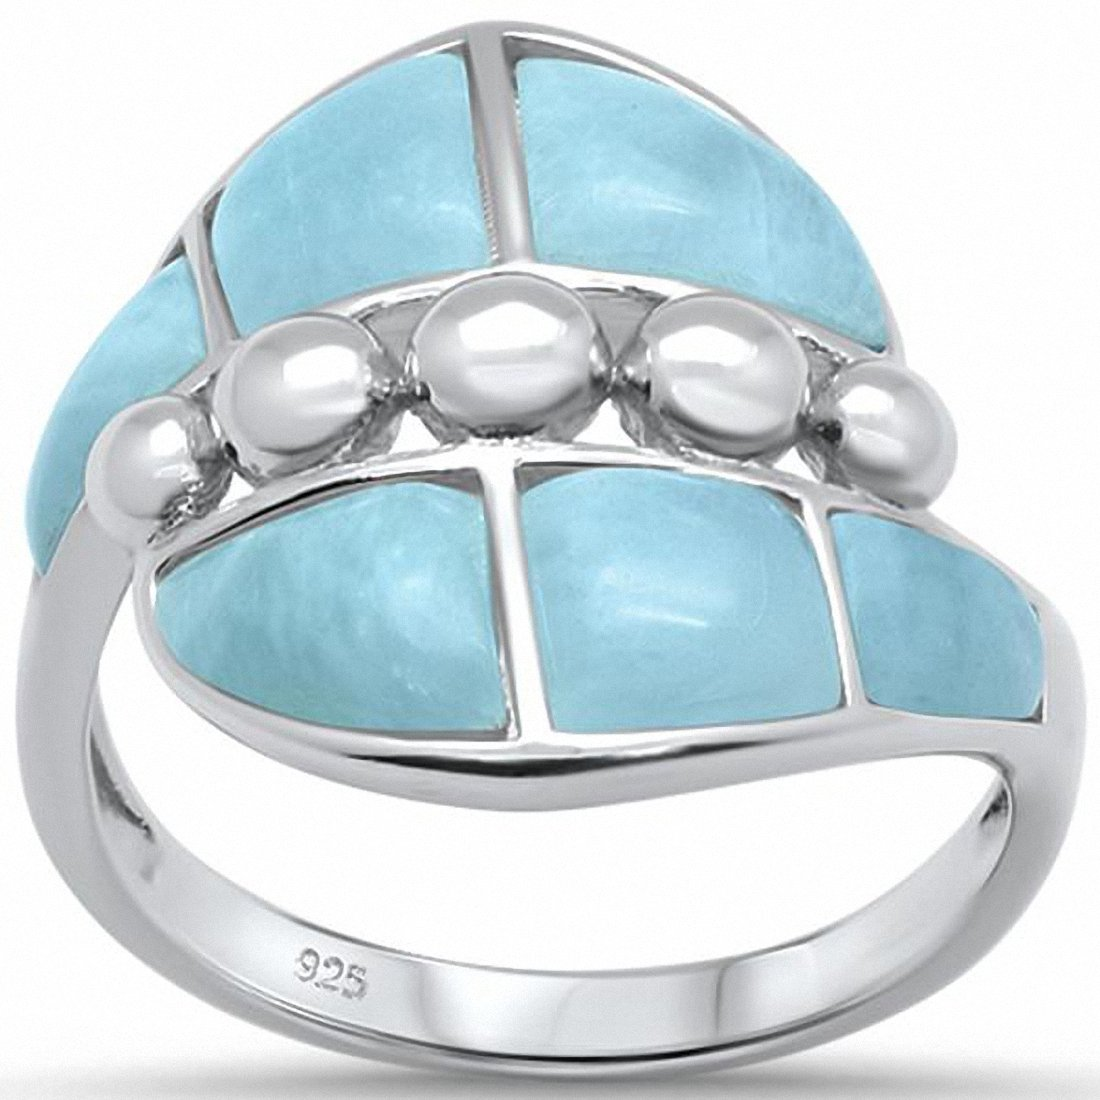 Fashion Ring Simulated Stone 925 Sterling Silver Choose Color